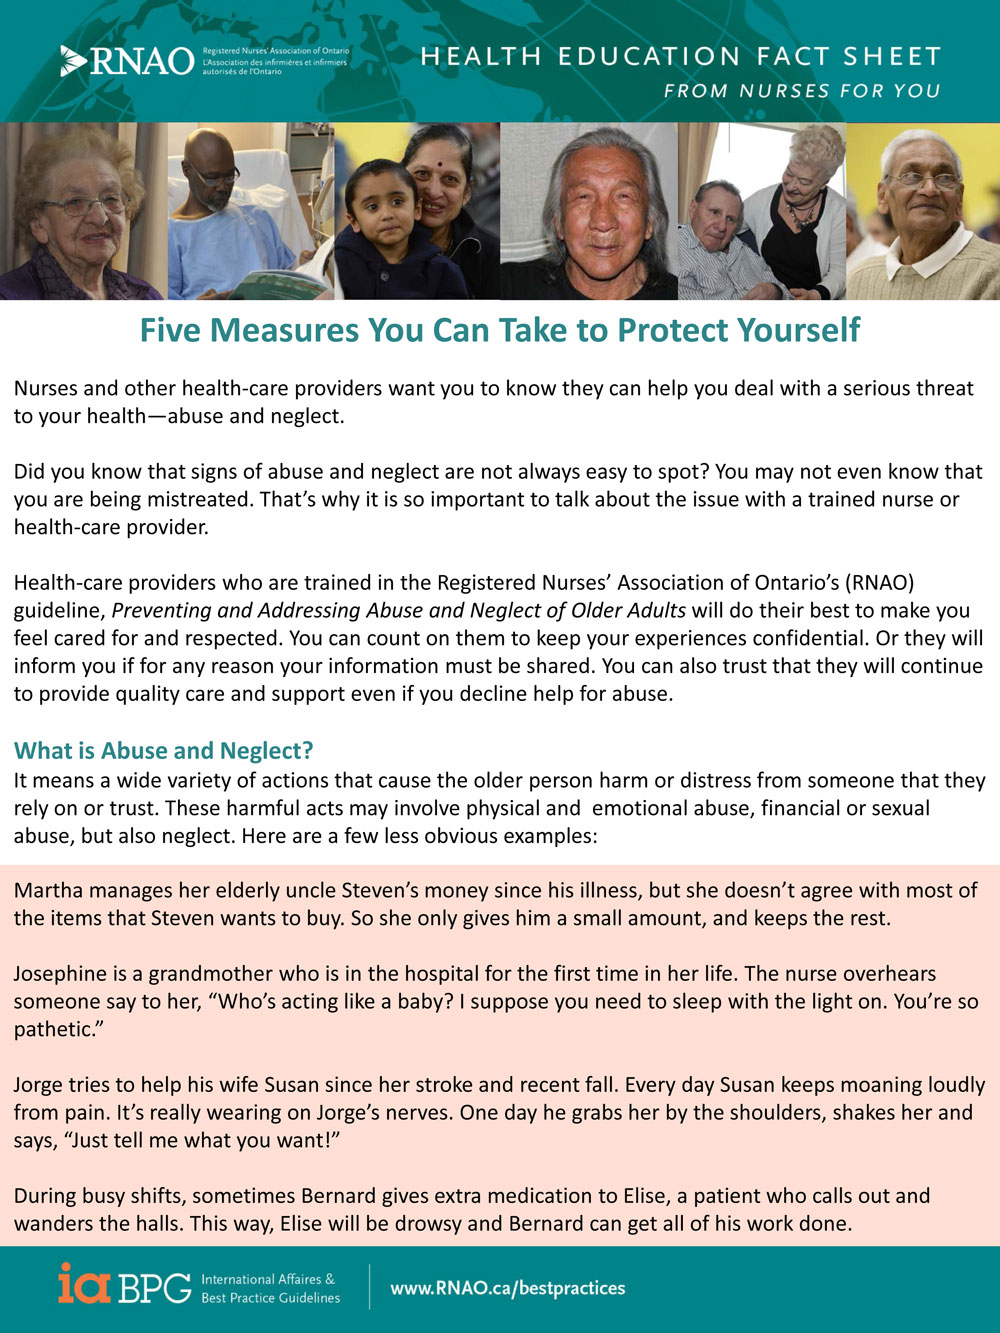 Five Measures You Can Take to Protect Yourself (From Abuse and